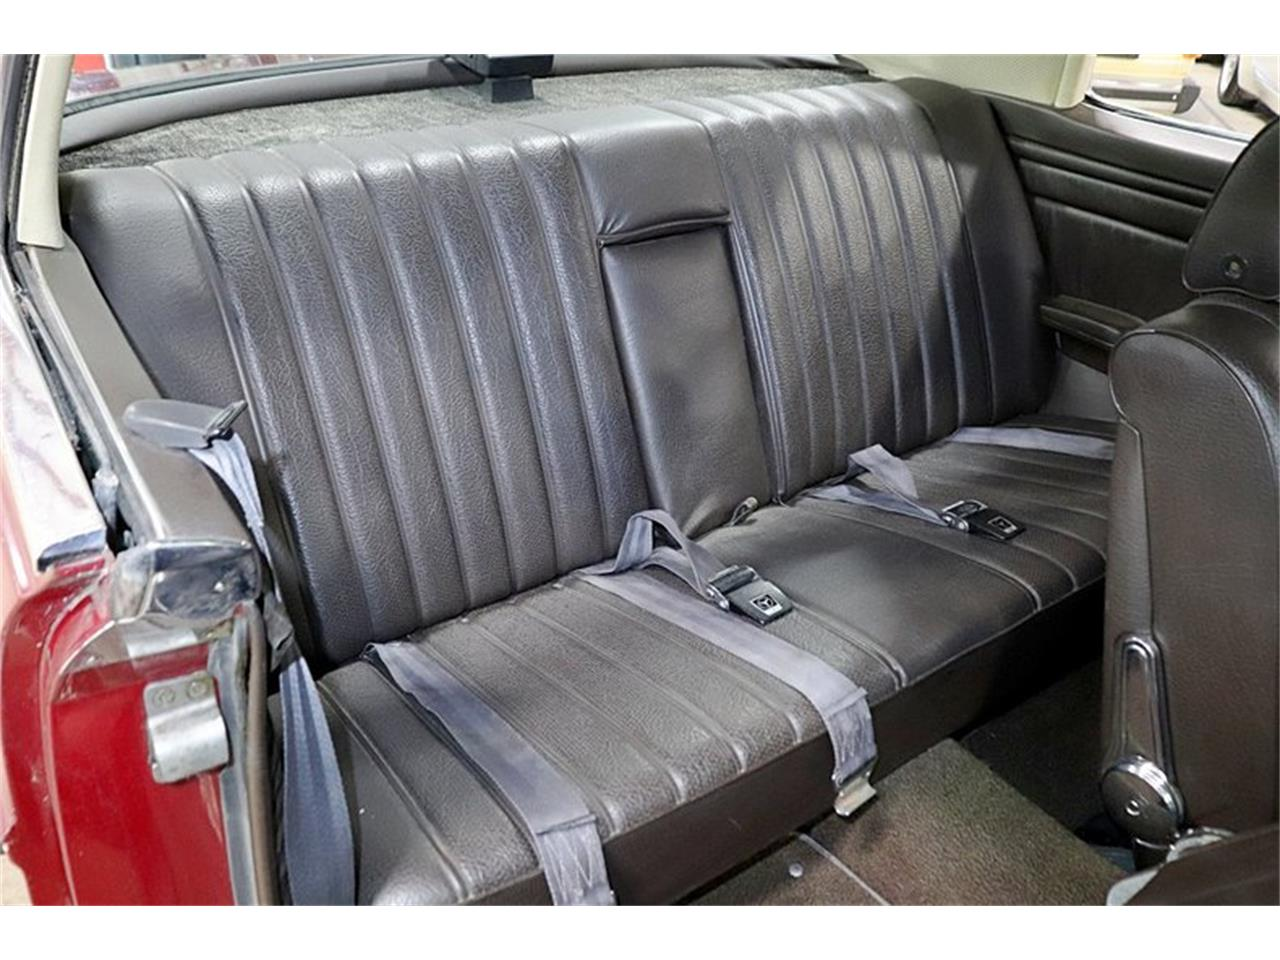 1971 Mercedes-Benz 250C for sale in Kentwood, MI – photo 23